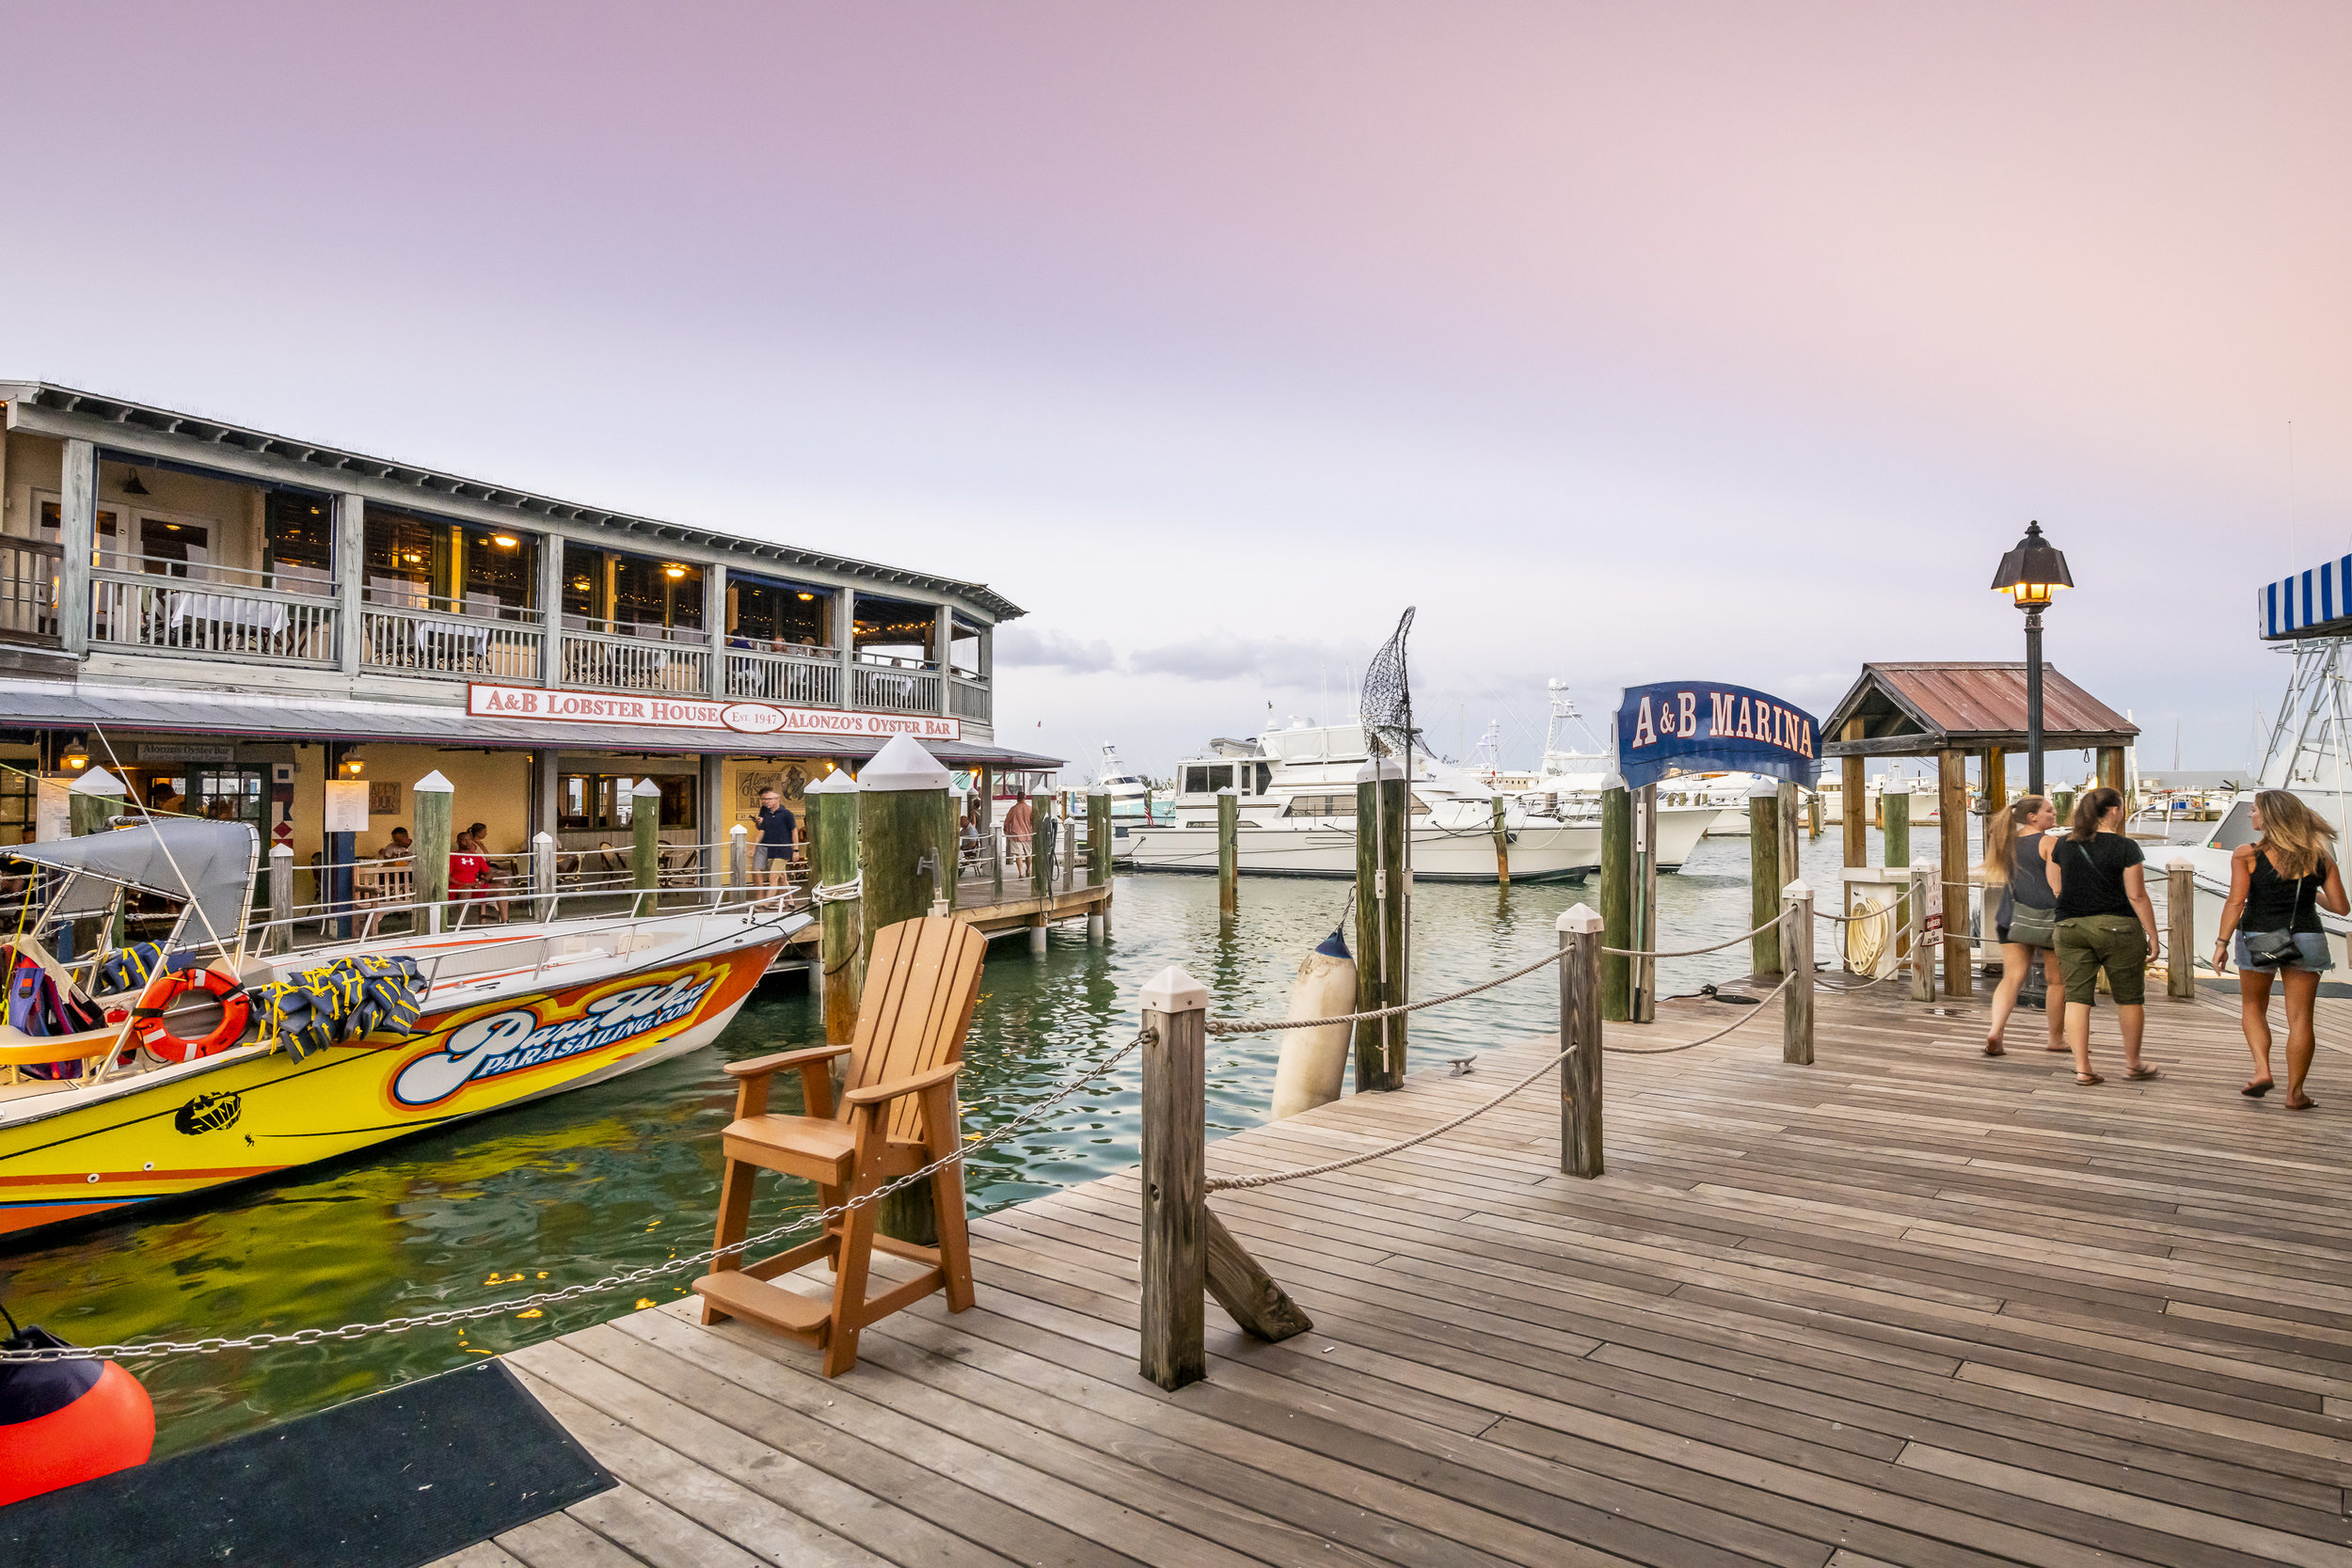 Looking for fun? - A&B Marina features a world class roster of charter fishing and experience providers.